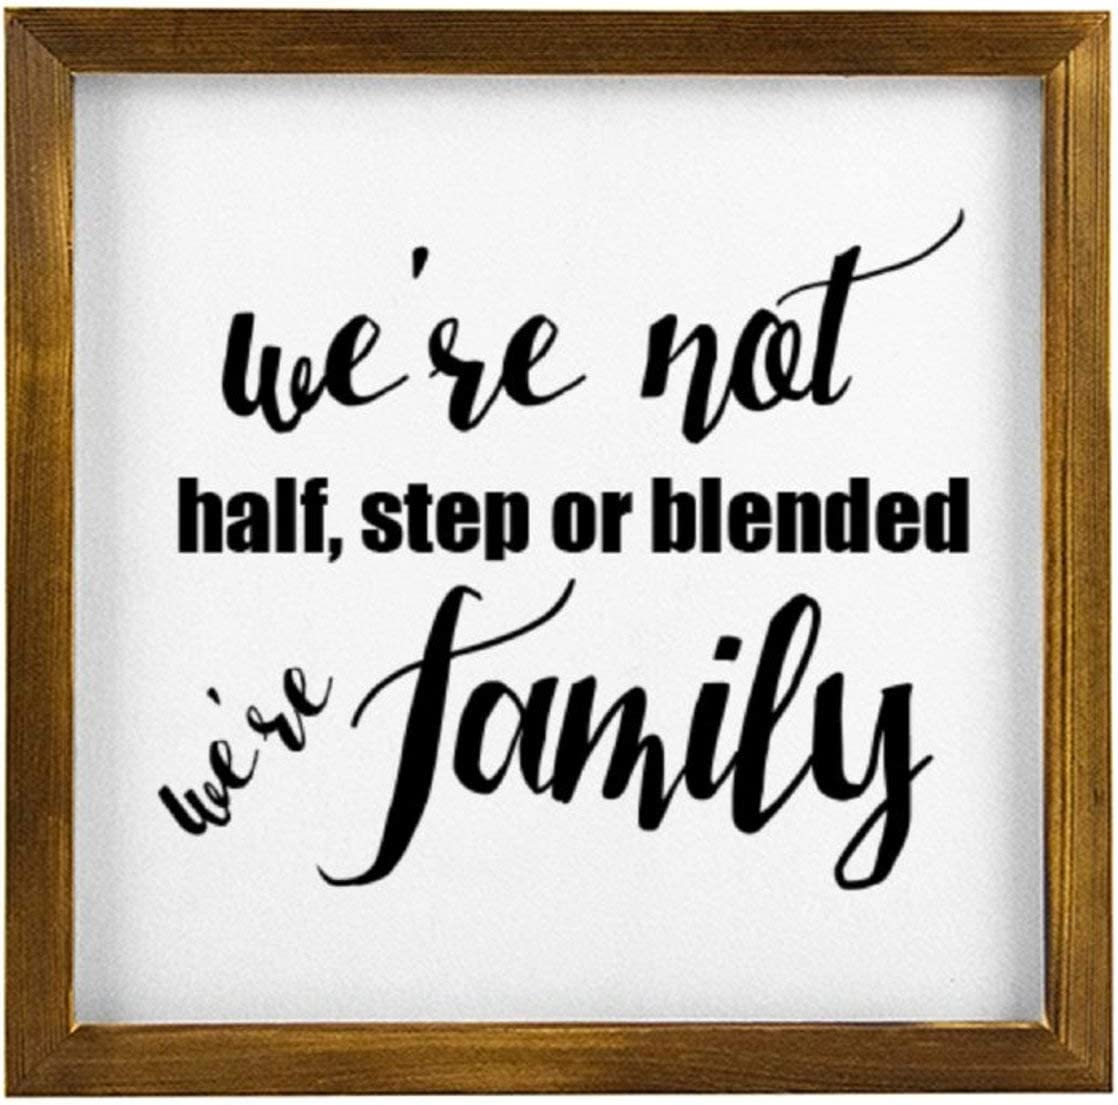 We Are Not Half Step Or Blended Family Rustic Wood Wall Sign,Hanging Wood Sign With Frame,Inspirational Quotes,quote saying words Sign Decor for Garden,Personalized Text Saying Party Funny Wooden Farm